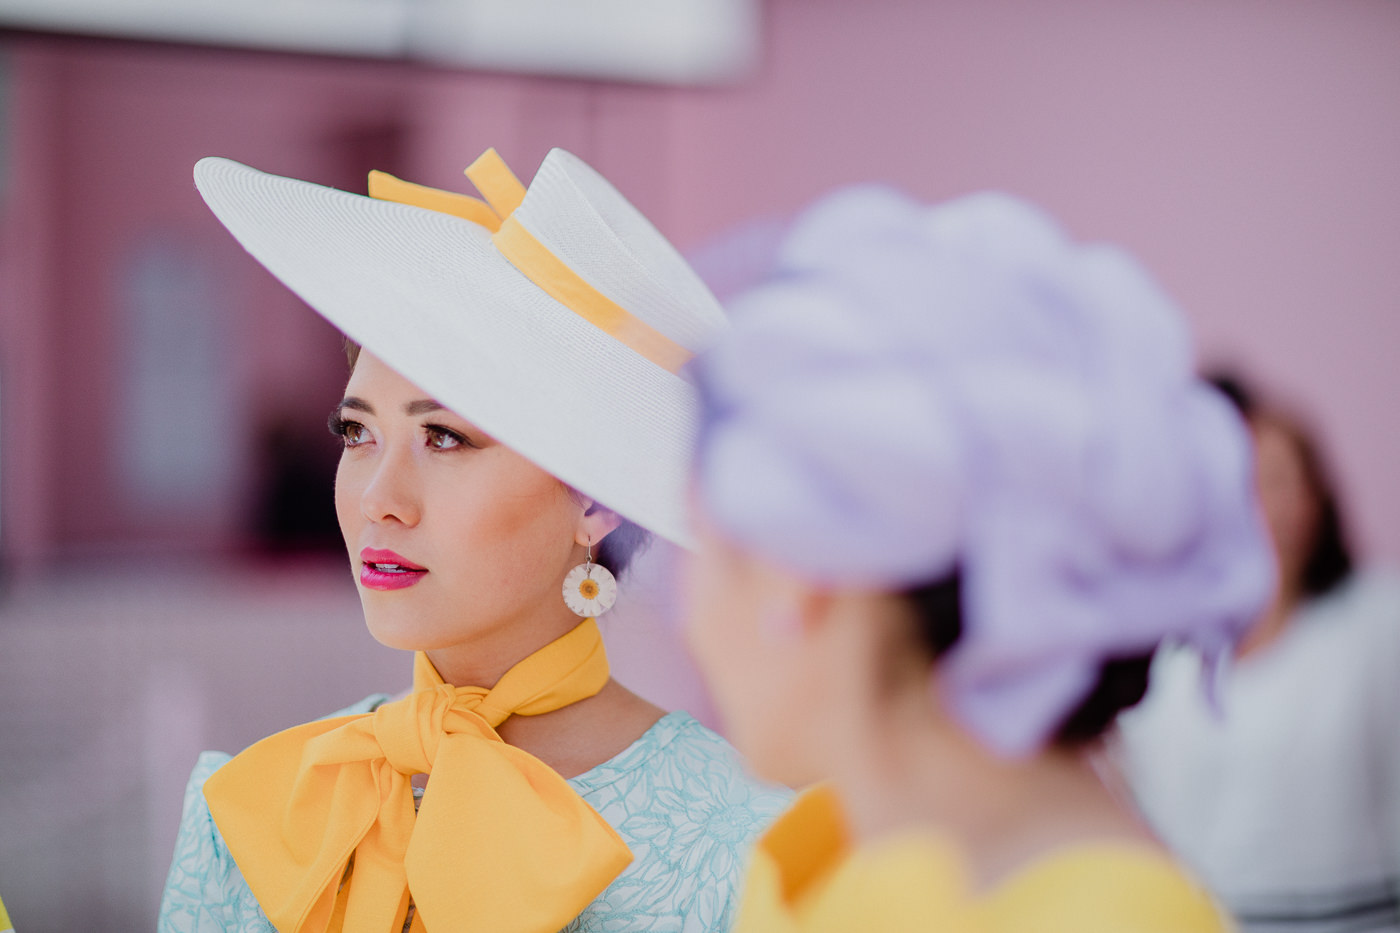 stylish and elegant millinery for the races - yellow